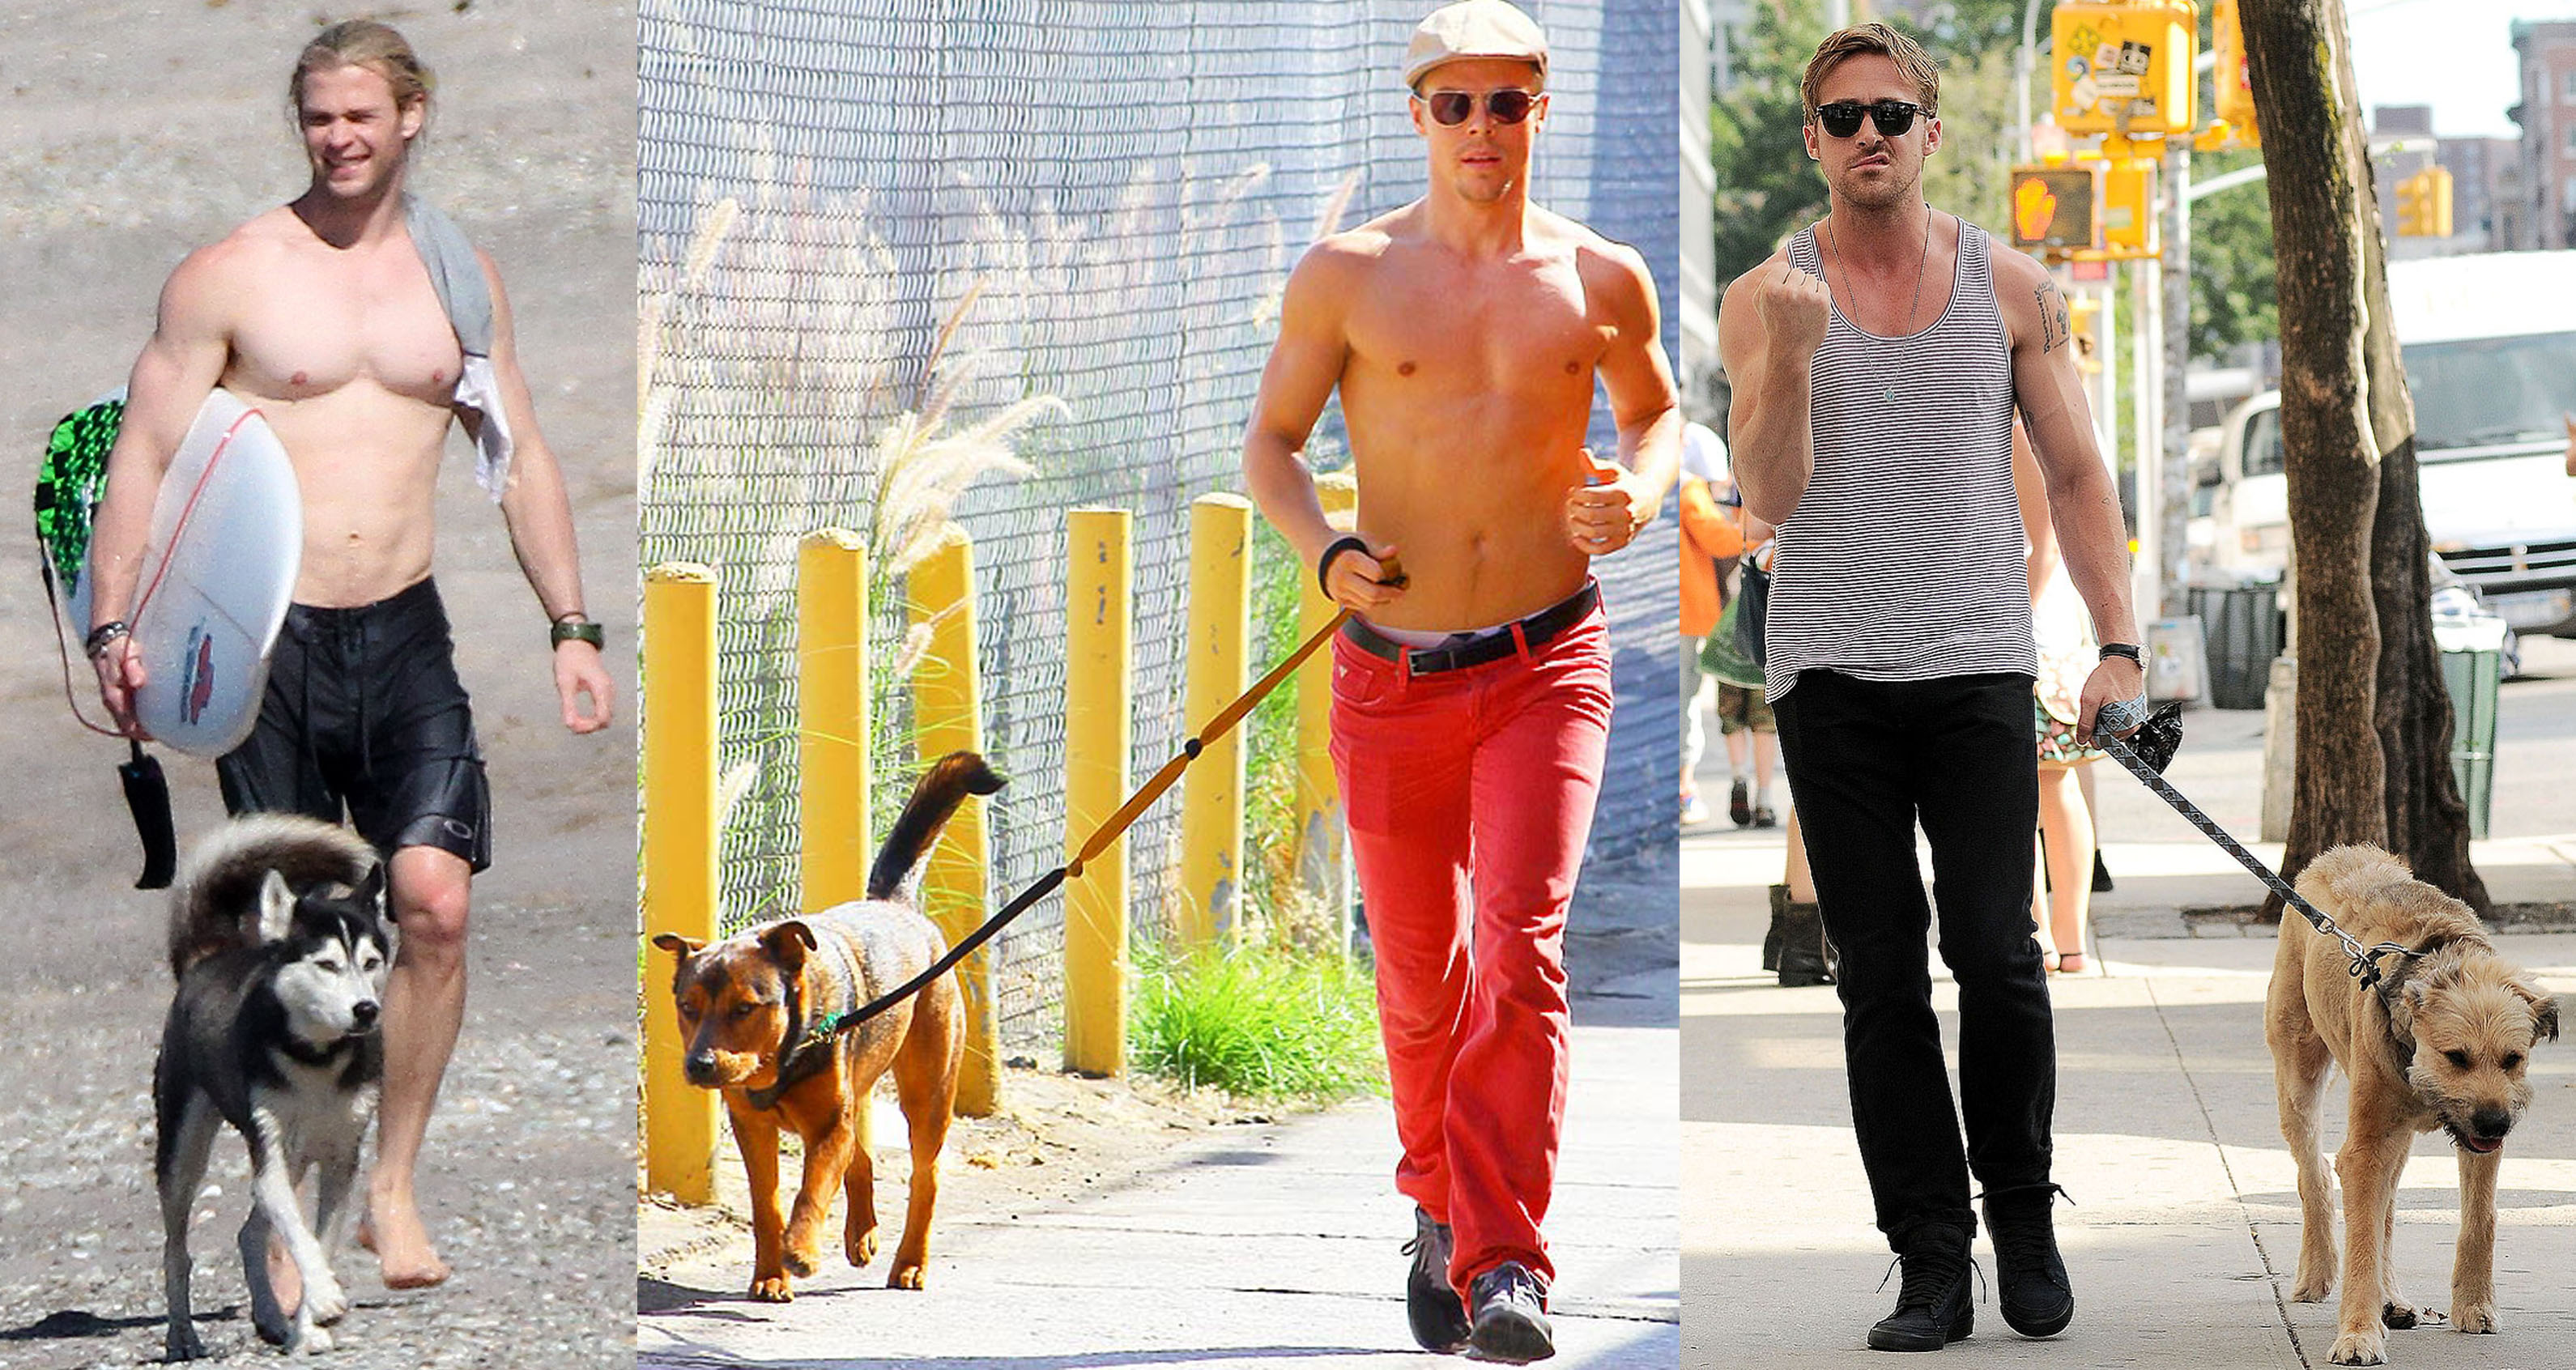 Guys and The Dogs